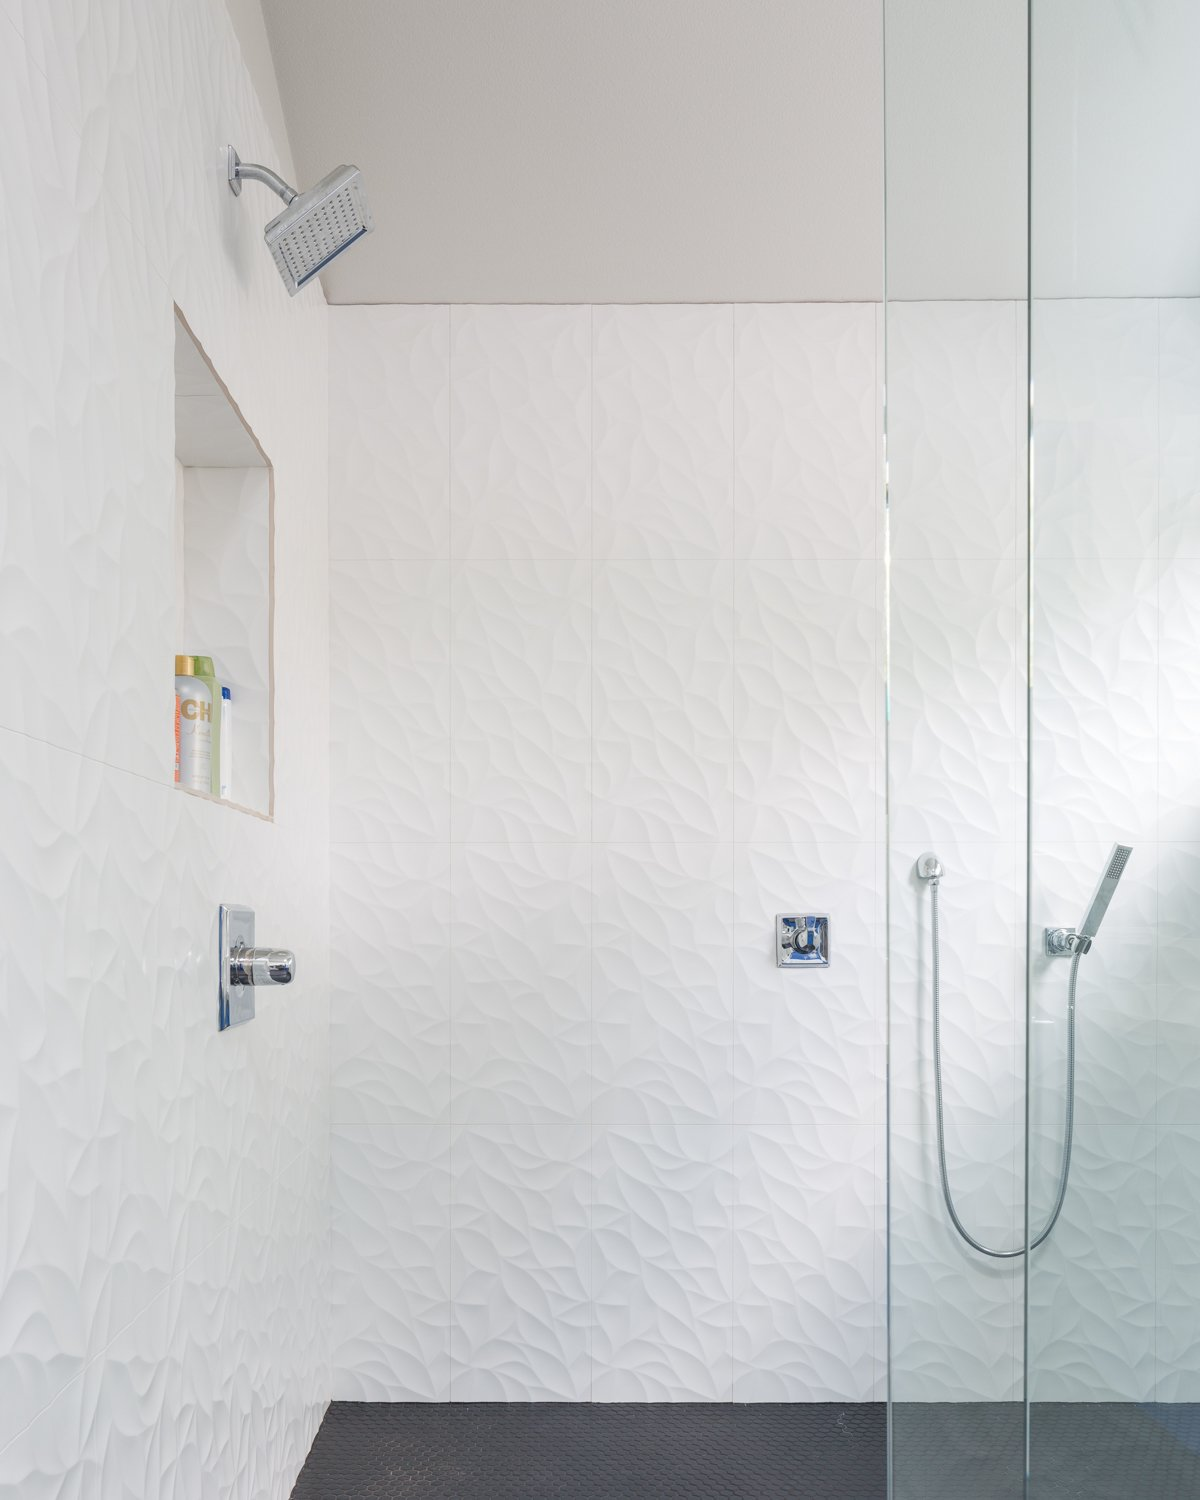 Bathroom Tagged: Bath Room, Open Shower, and Ceramic Tile Wall. Norris House by Davey McEathron Architecture